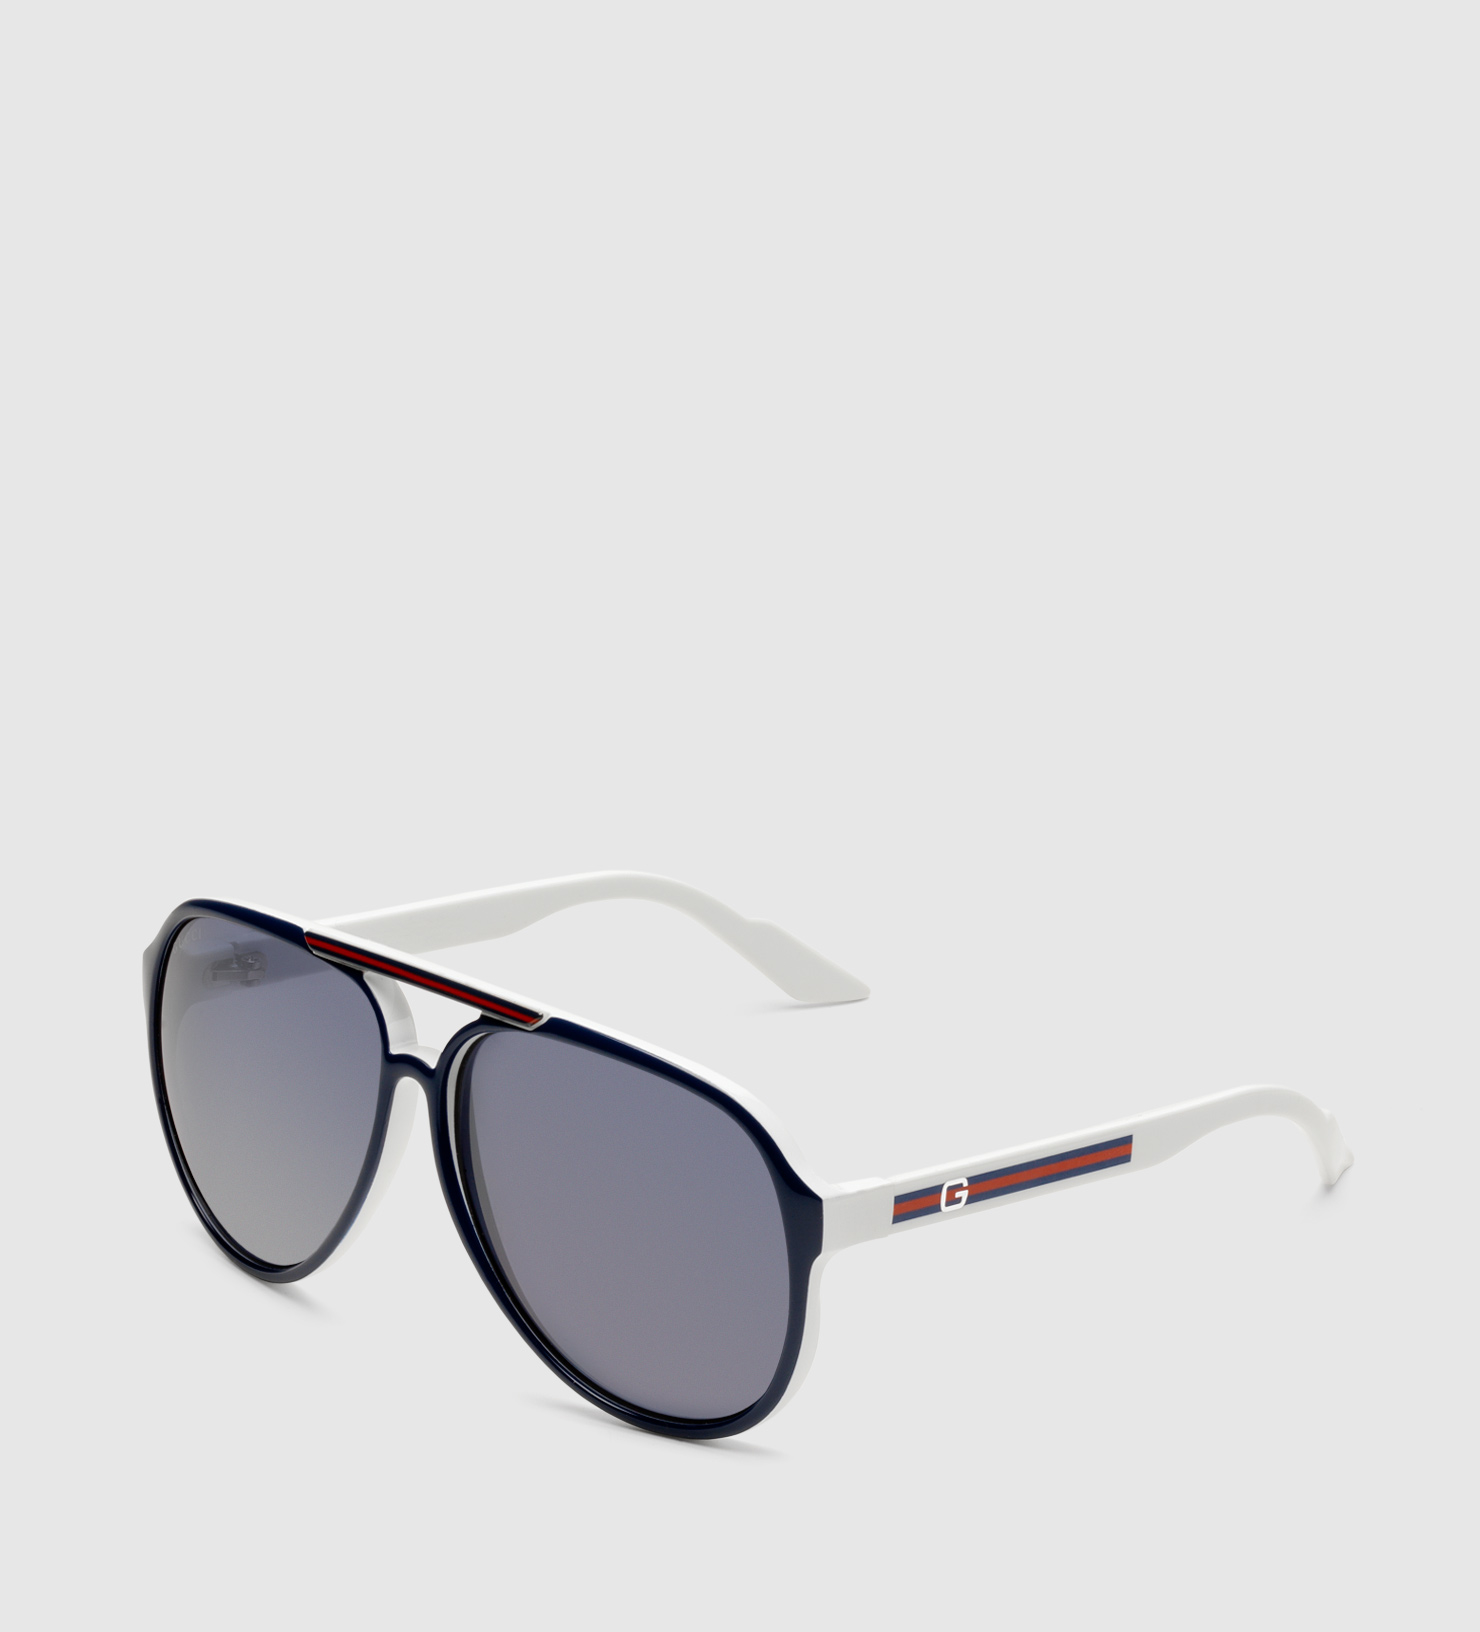 05b5a63dffd Lyst - Gucci Medium Aviator Sunglasses With G Detail And Signature ...